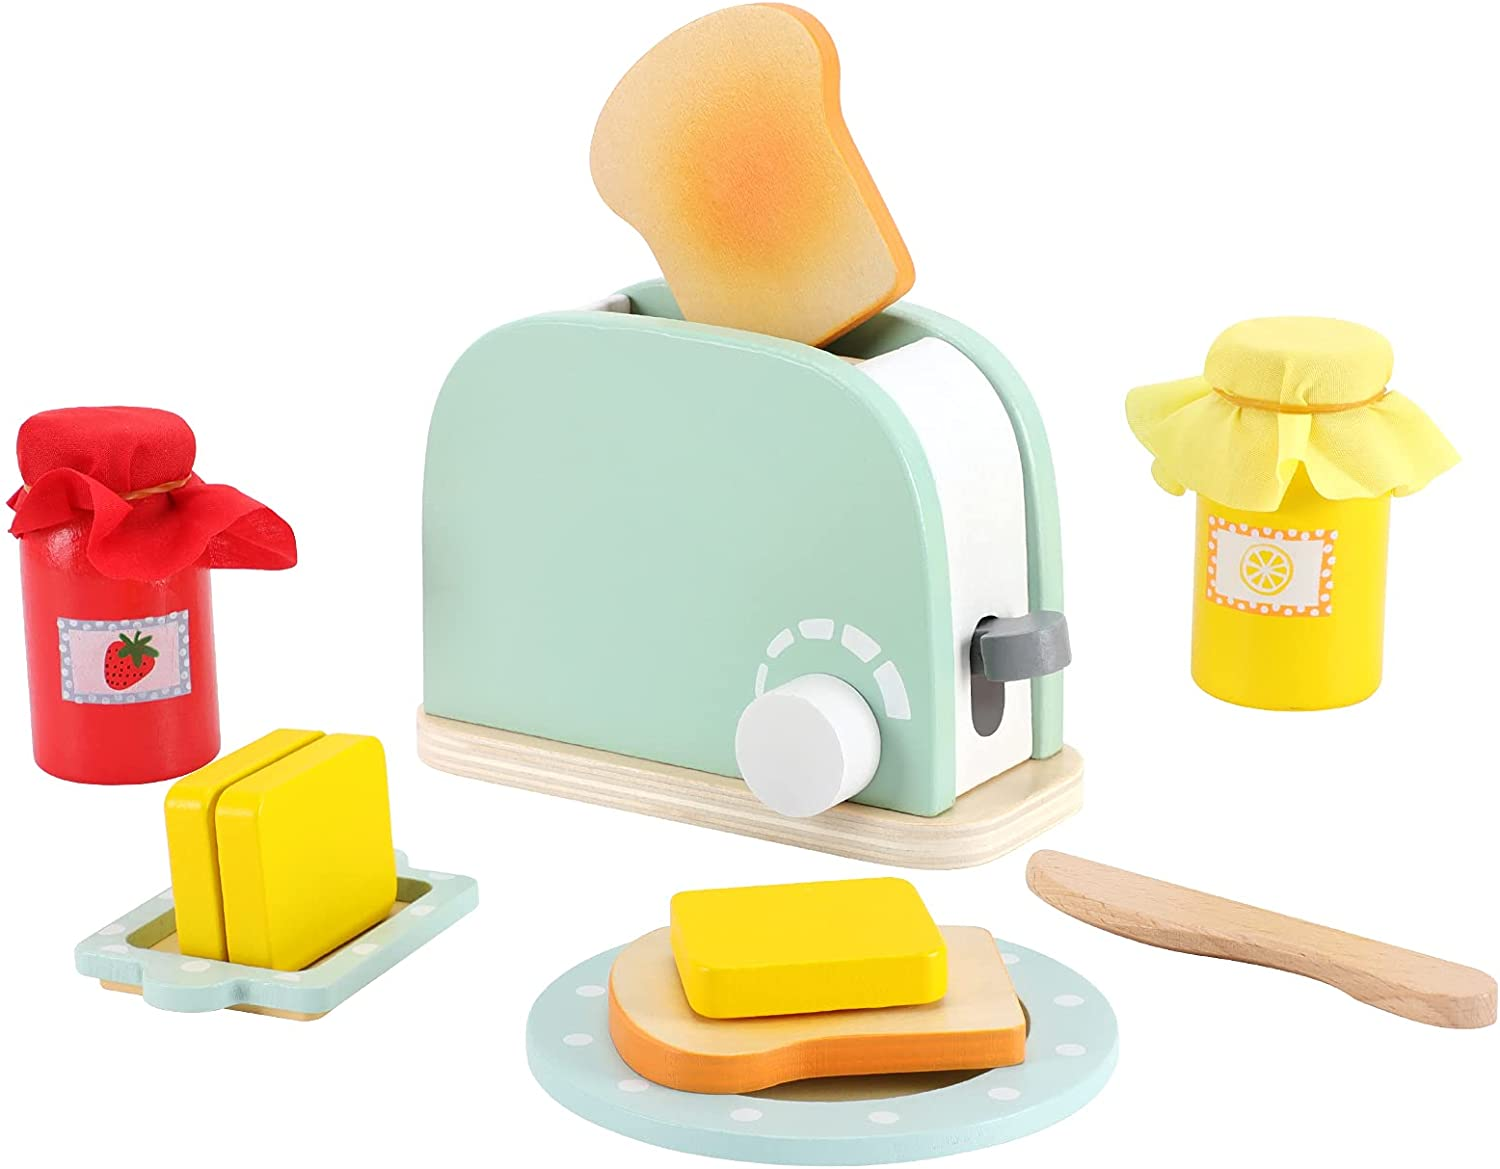 WHOHOLL Wooden Kitchen Toys, 11Pcs Pop Up Toaster Play Bread Maker with Bread Slice Knife Butter Sauce Toddler Kitchen Accessories for Early Education Kitchen Pretend Games for Girls Boys Gift